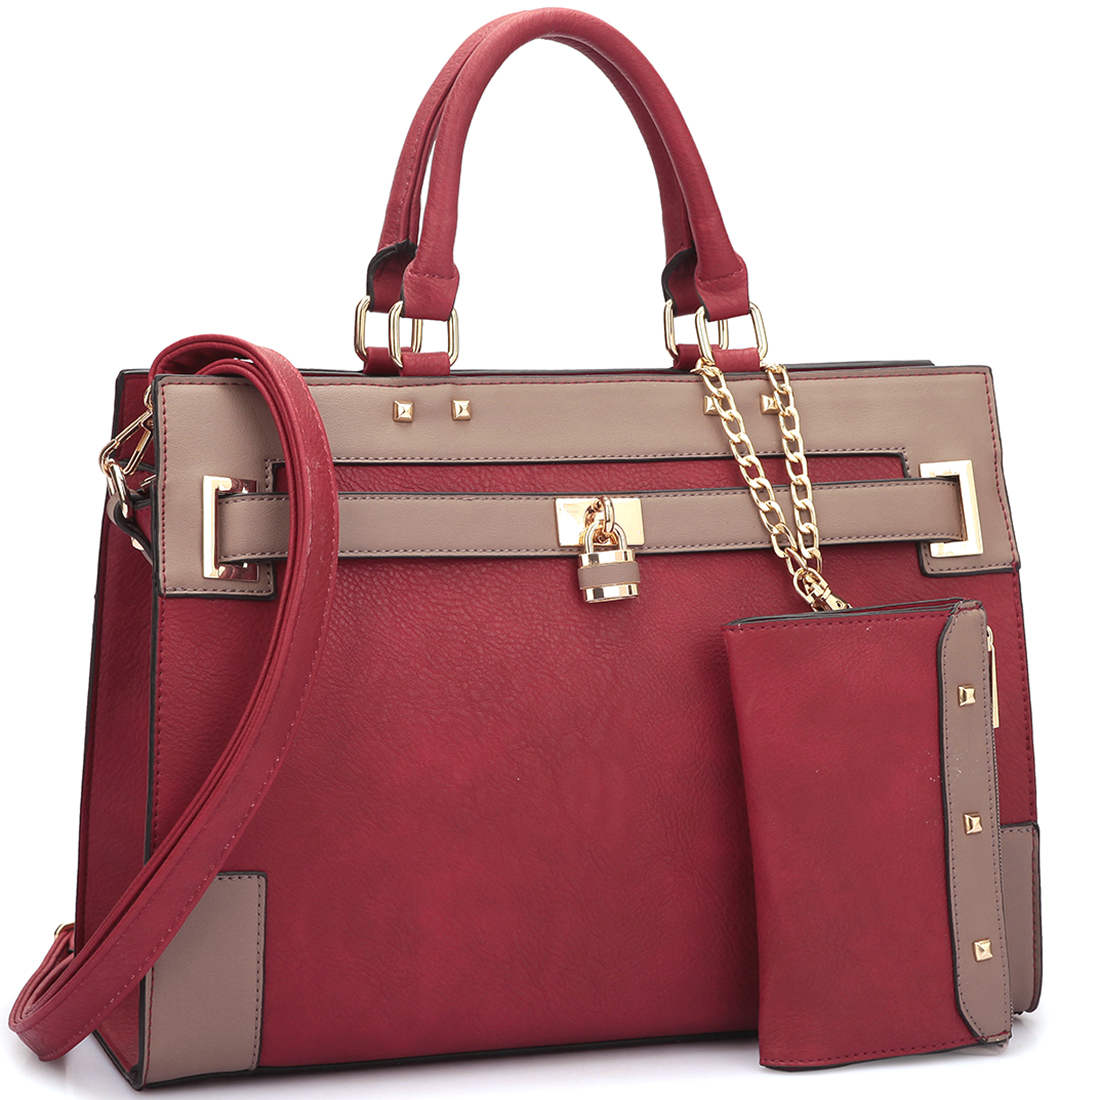 Faux Leather Padlock & Key Satchel with Shoulder Strap